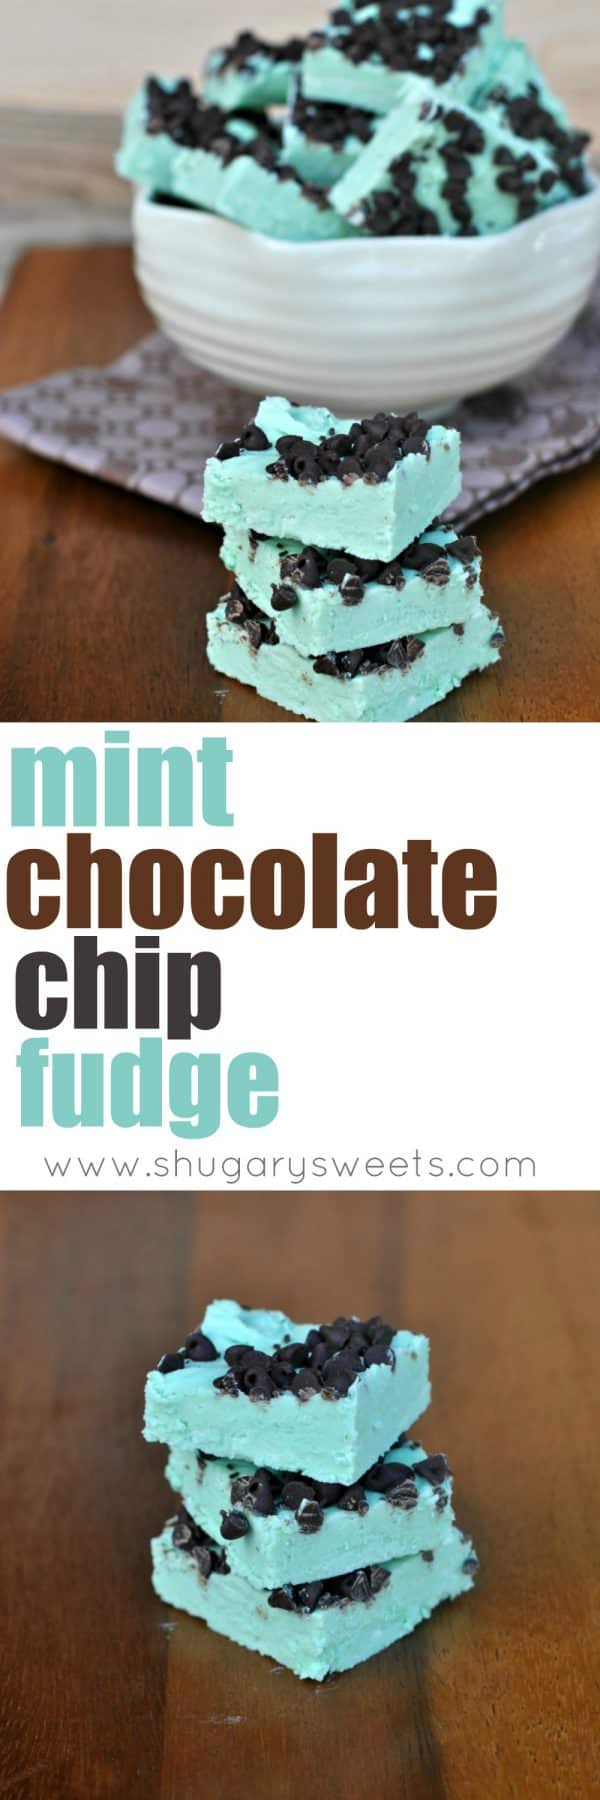 I took 2 Ingredient fudge to a new level using Duncan Hines Mint Chocolate frosting creations, vanilla frosting and white chocolate. Seriously, the easiest fudge recipe around, with so many flavor possibilities!